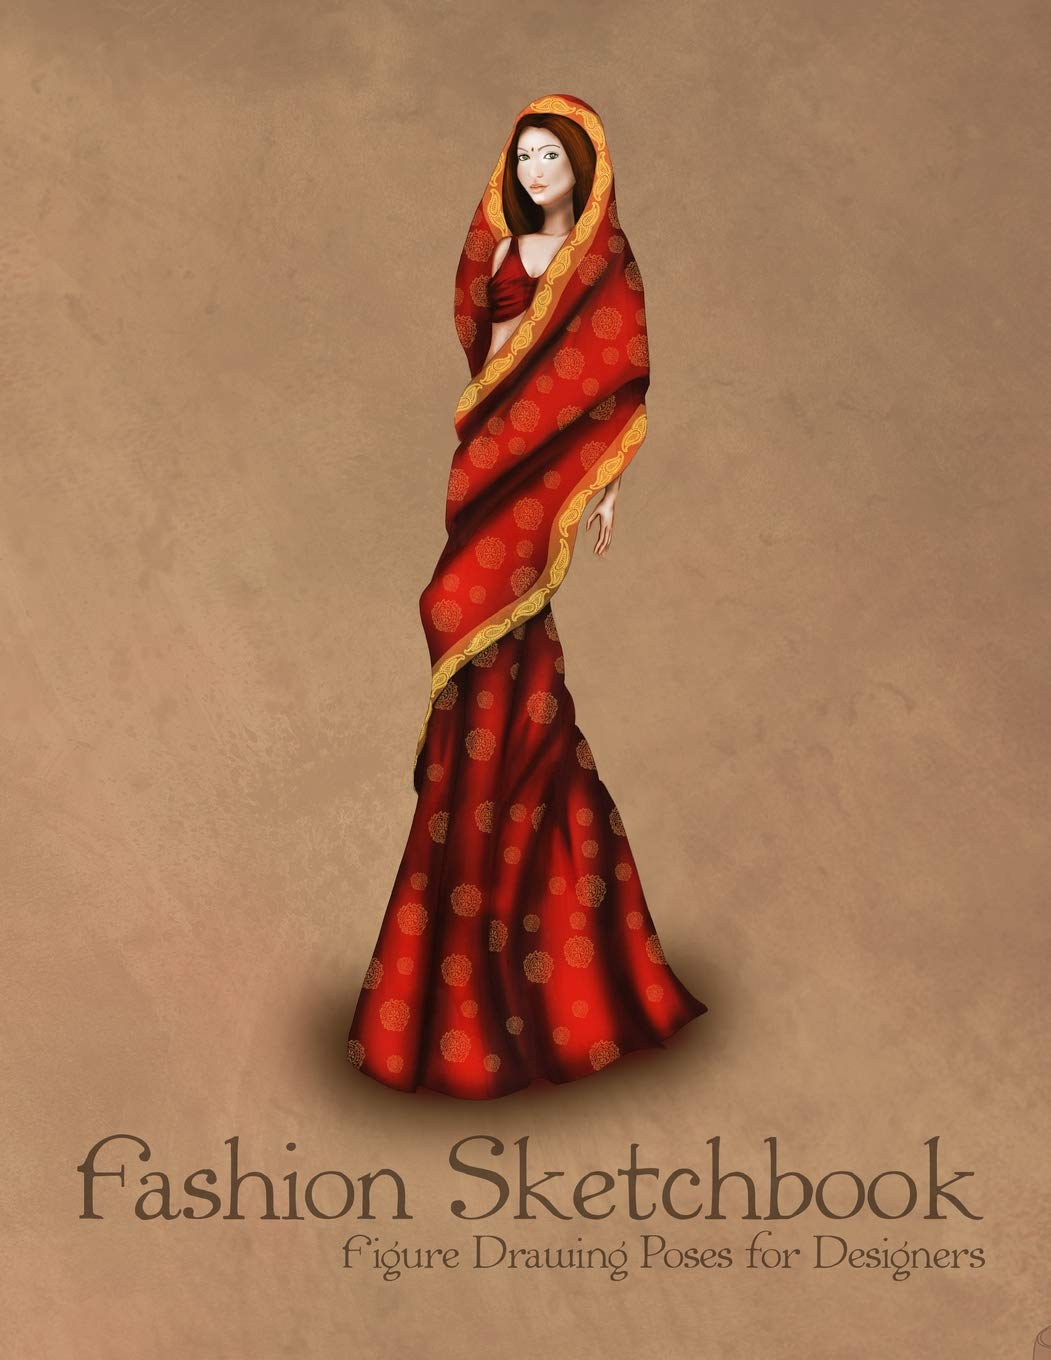 Fashion Sketchbook Figure Drawing Poses For Designers Large 8 5x11 With Bases And Indian Traditional Clothing Vintage Fashion Illustration Cover Sketchbooks Fashion Template 9781725899605 Amazon Com Books